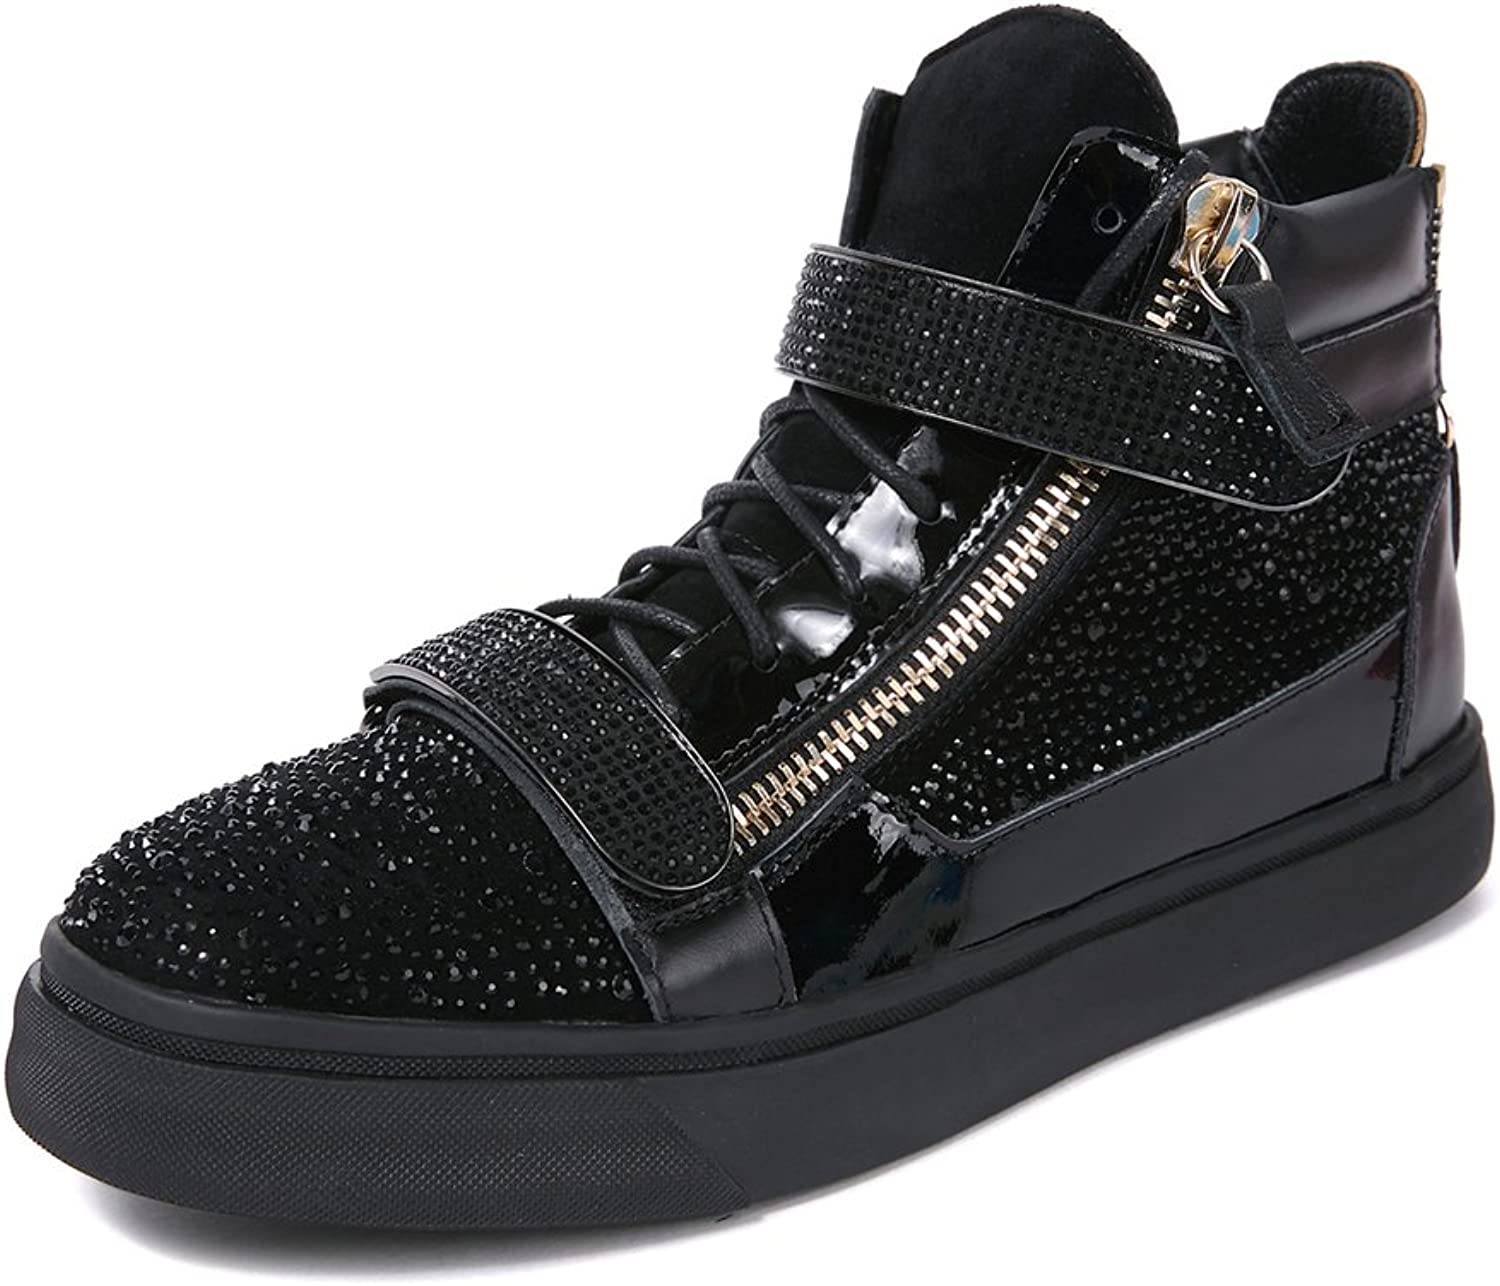 F.N.JACK Fashion shoes High-Top Sneaker Black Glittering Crystals Suede & Shearling Double-Zip